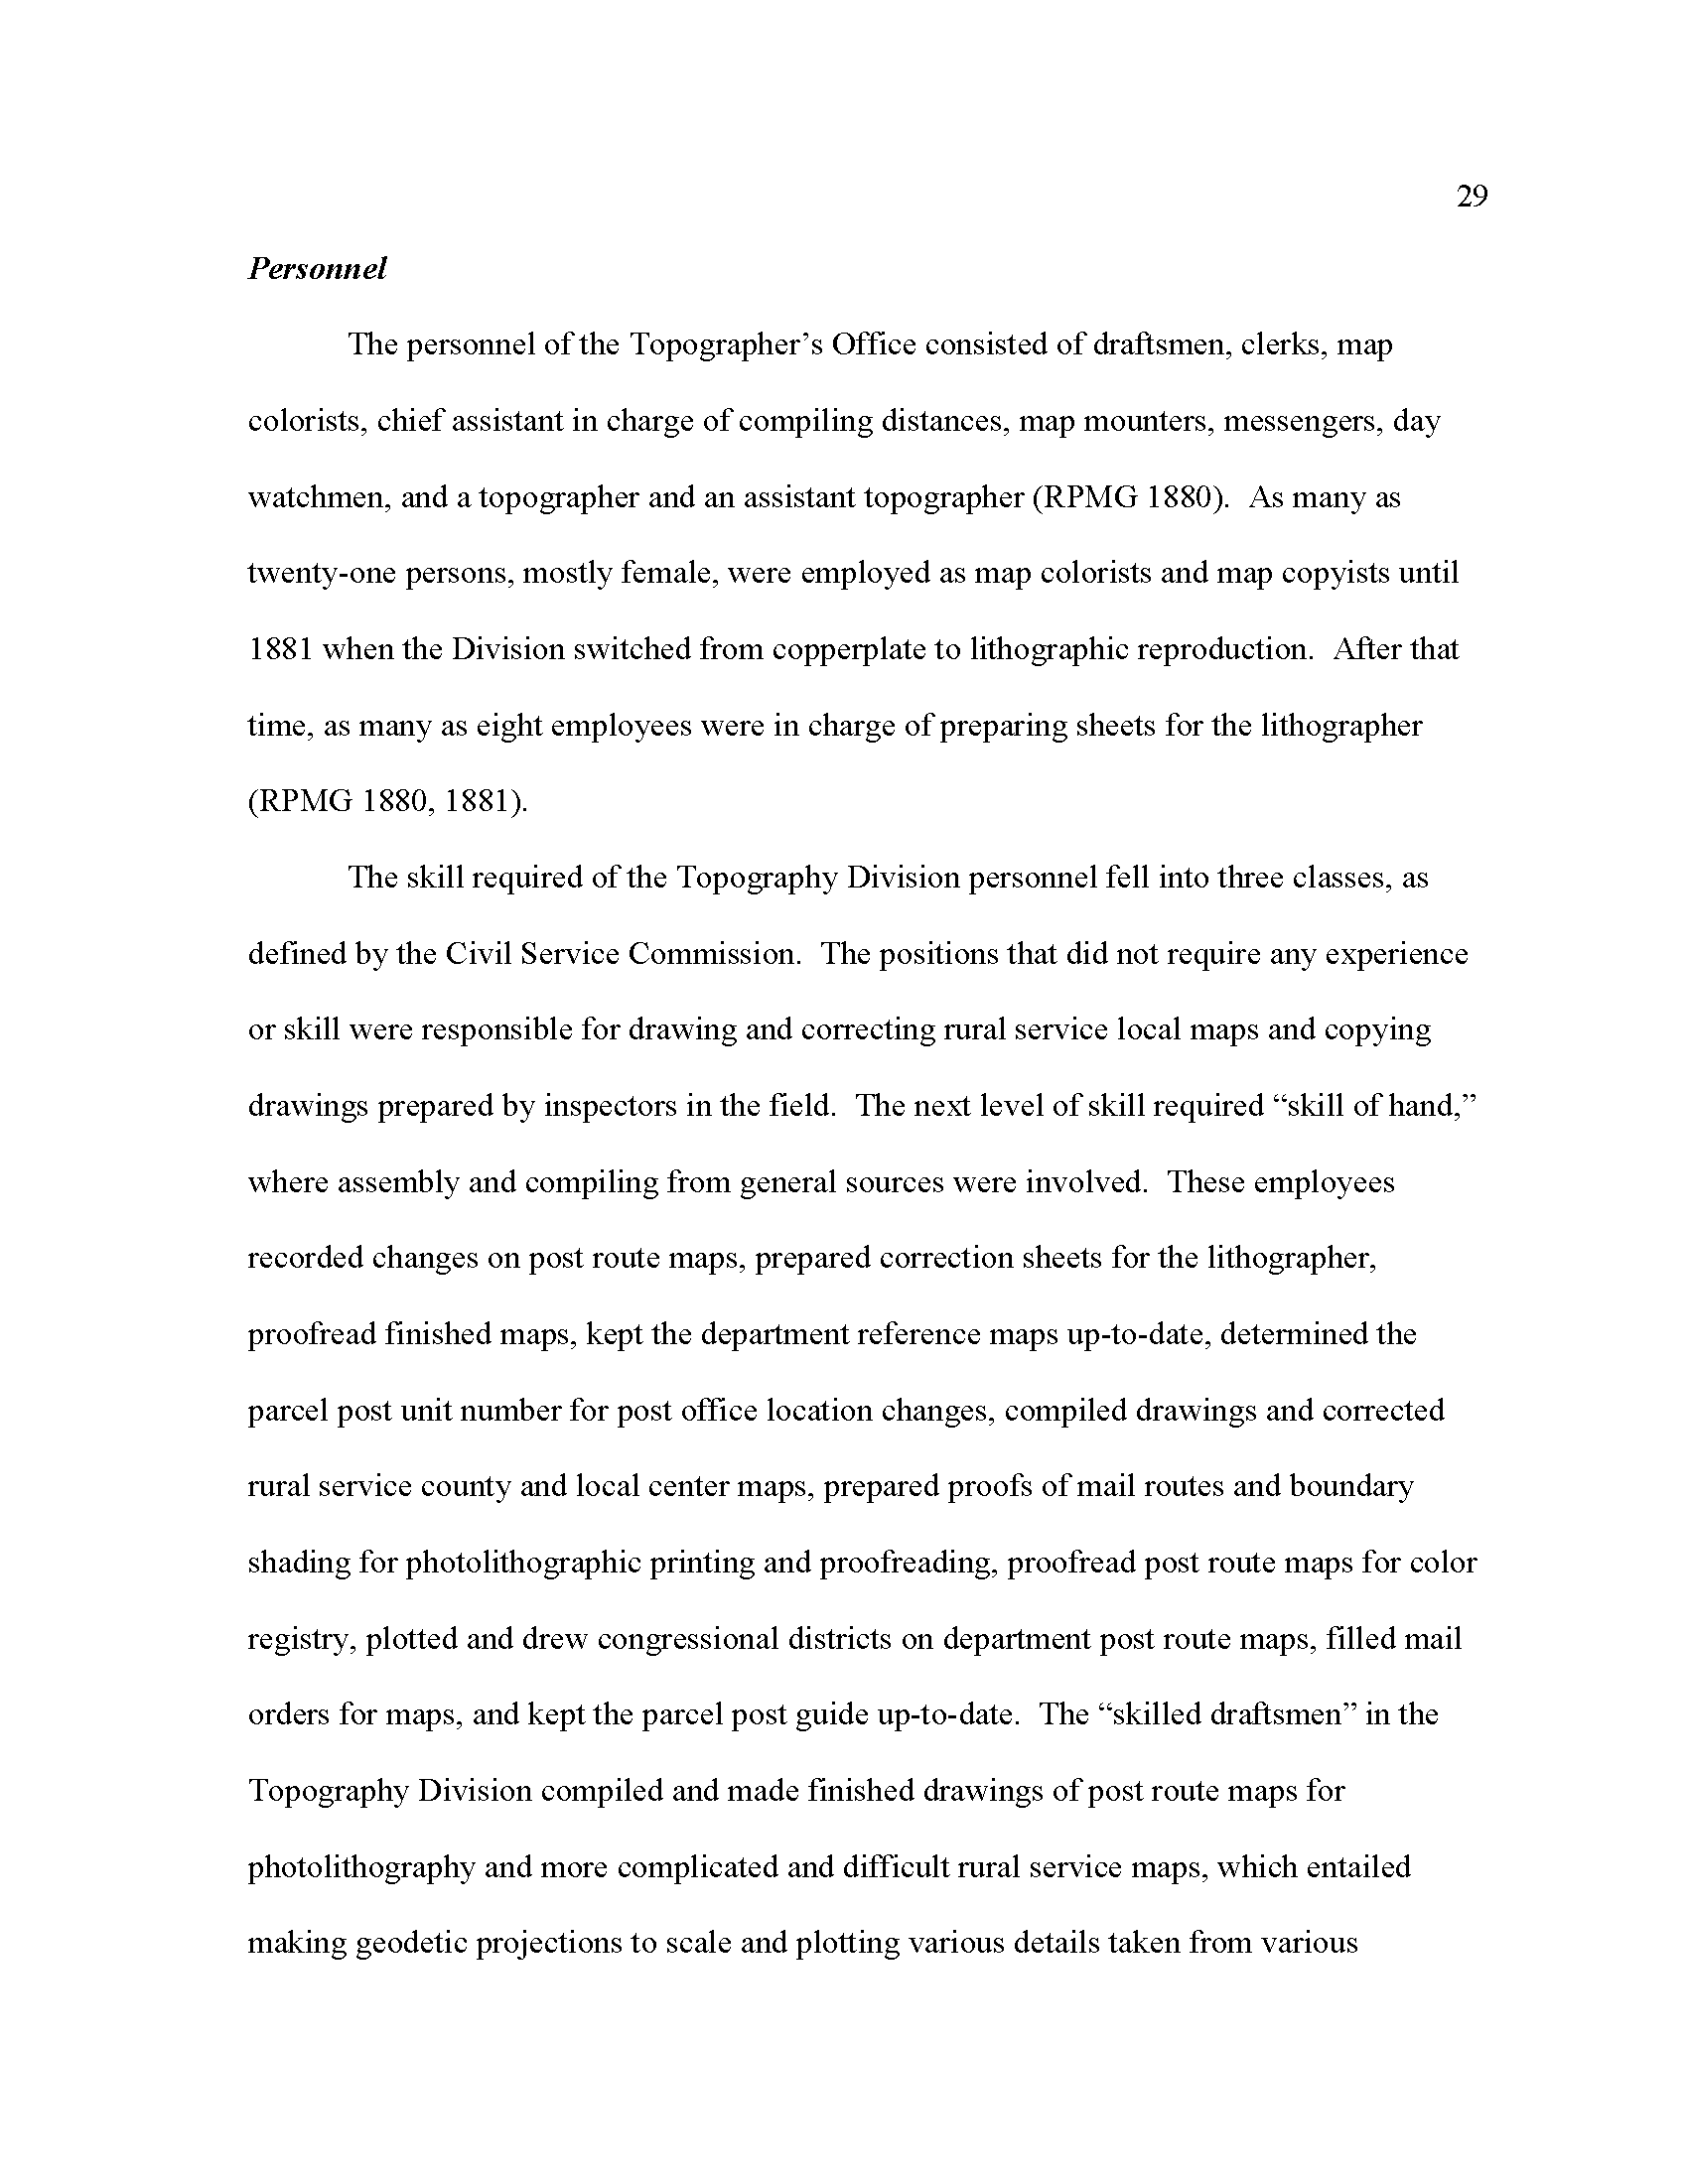 Thesis Final_Page_033.png